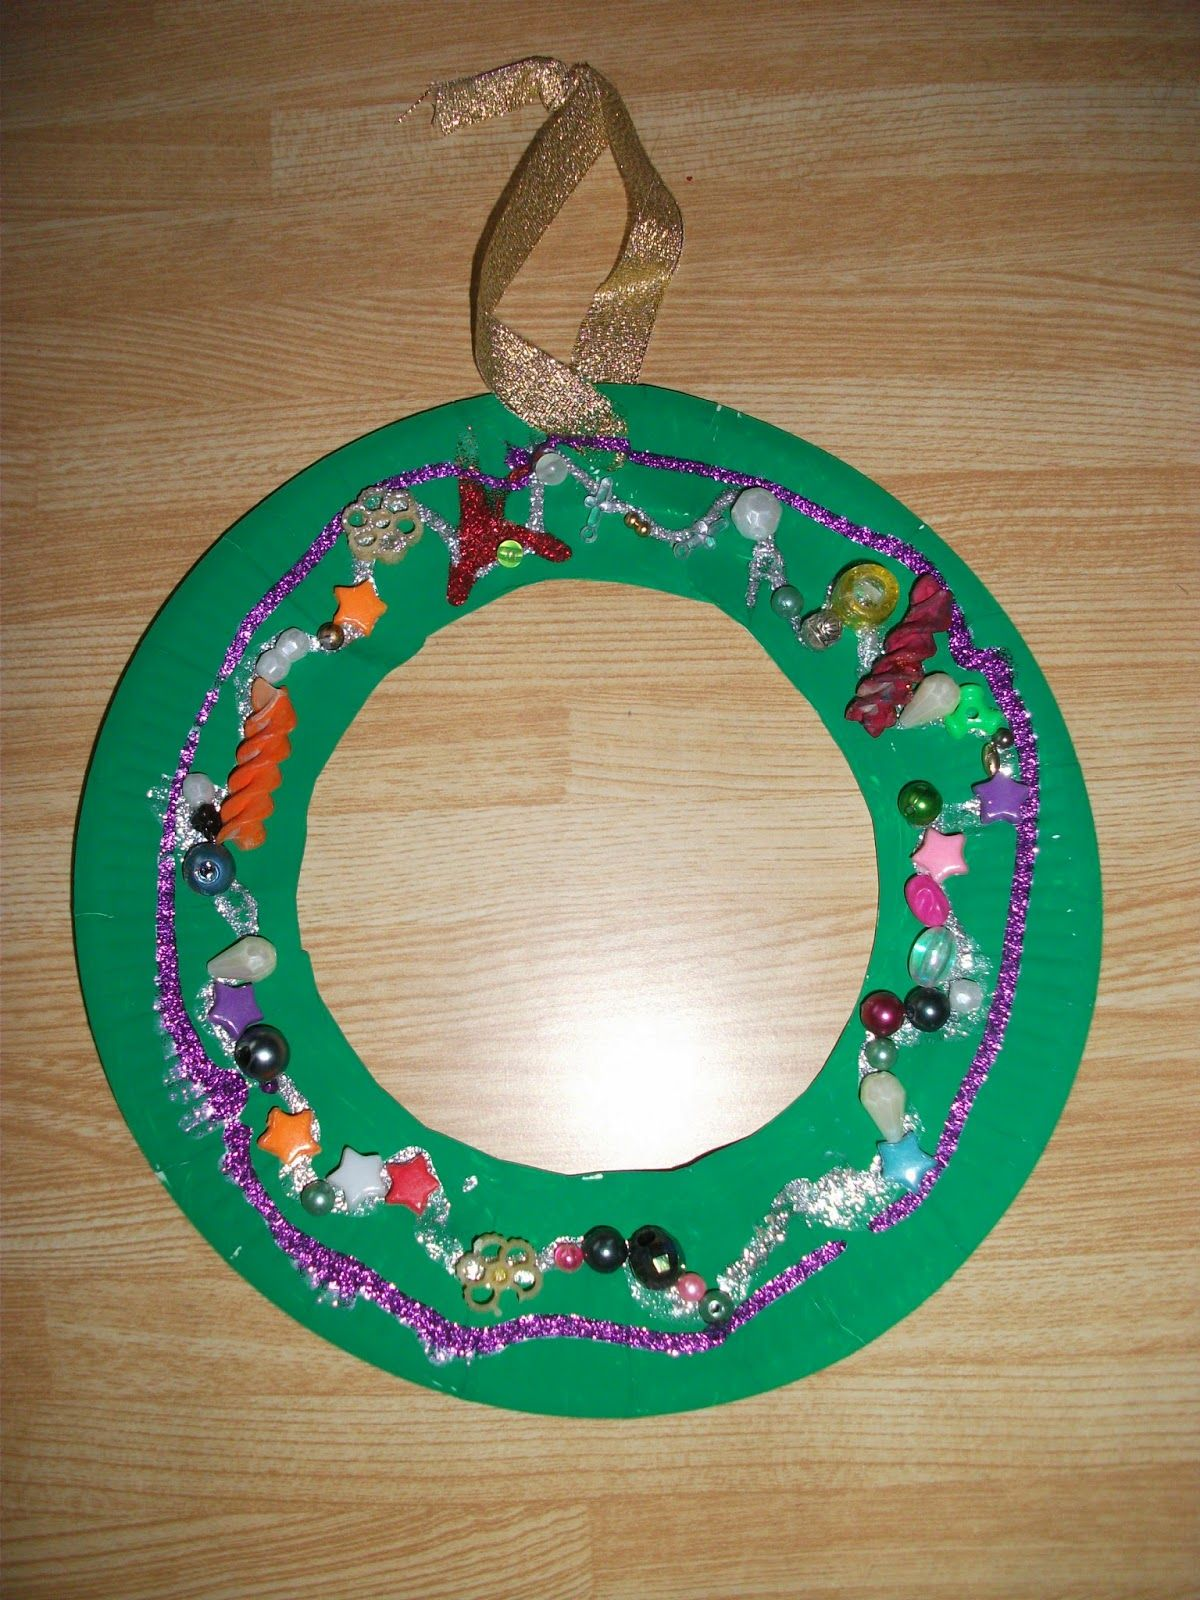 Preschool Crafts for Kids* Paper Plate Christmas Wreath Craft & A classic Christmas craft. Turn an ordinary paper plate into a ...